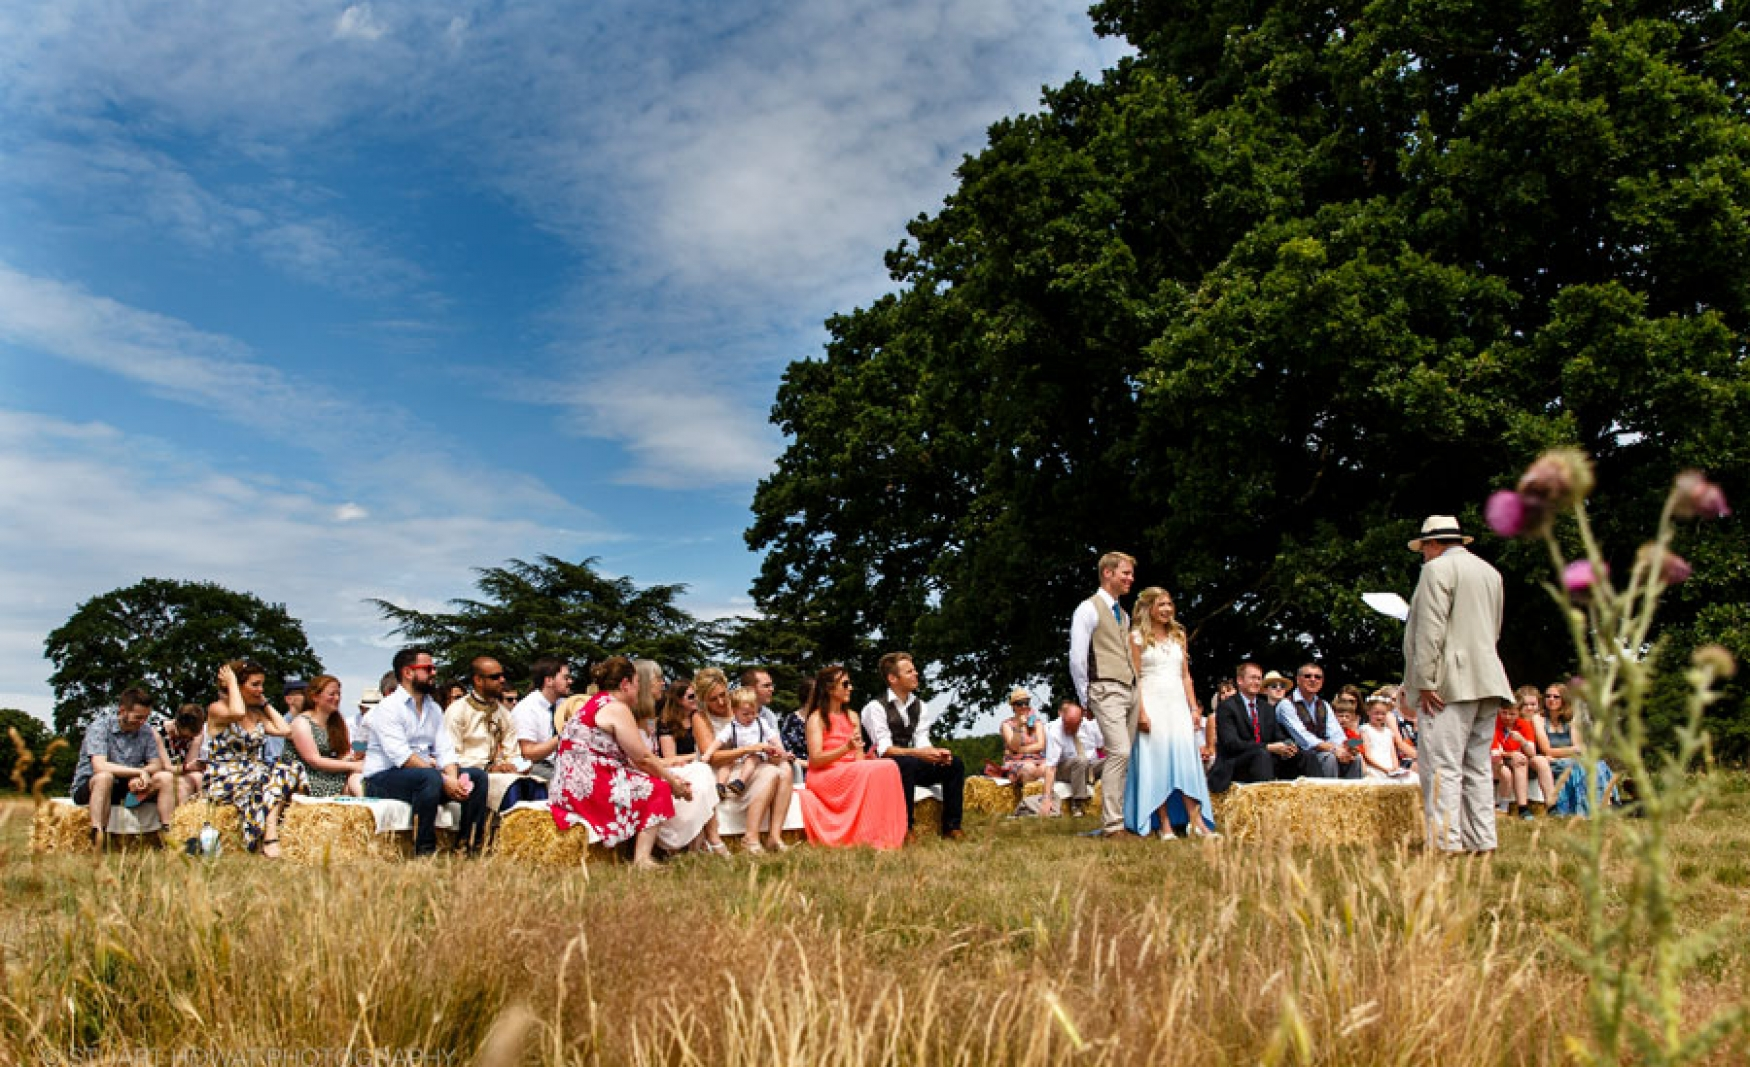 fiesta-fields-outdoor-wedding-events-company-tipi-surrey-sussex-hidden-valley-godalming-5